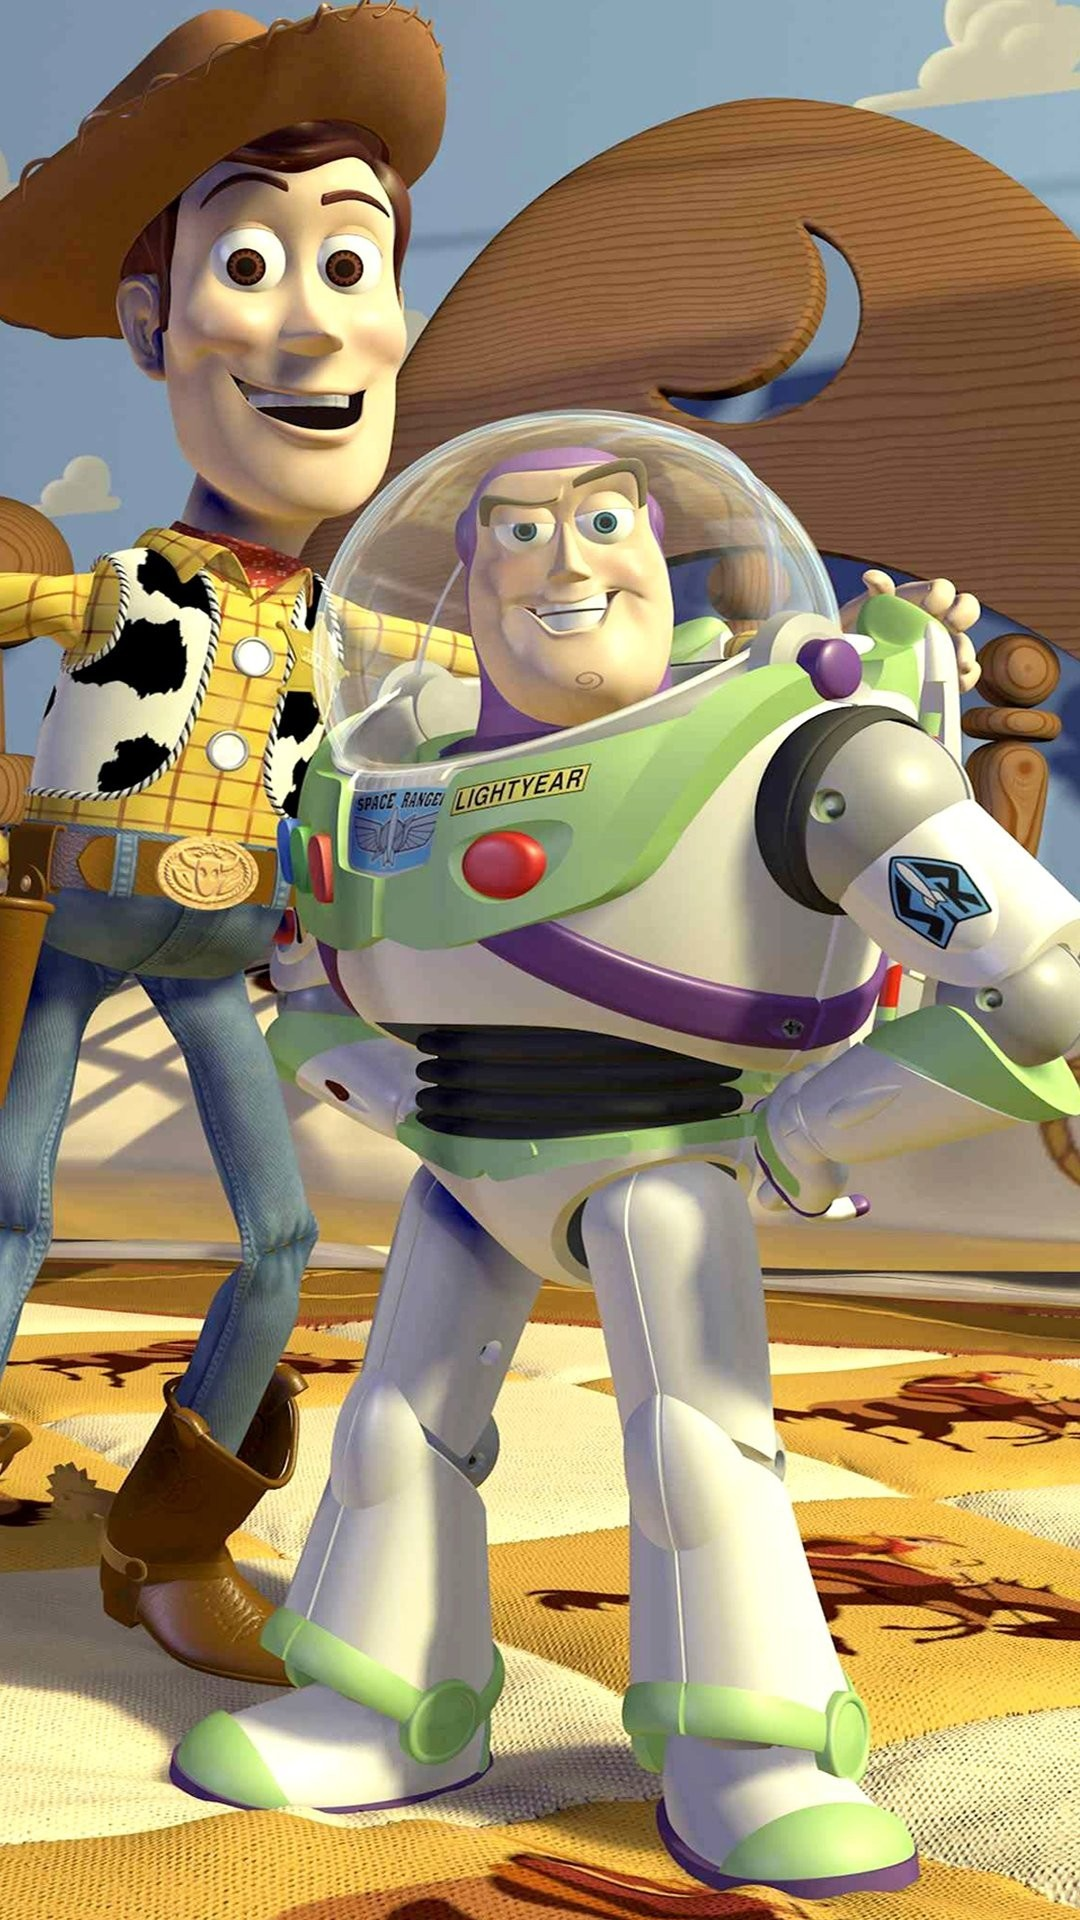 Toy Story Cracked Magazine: Toy Story Wallpaper For Desktop (55+ Images